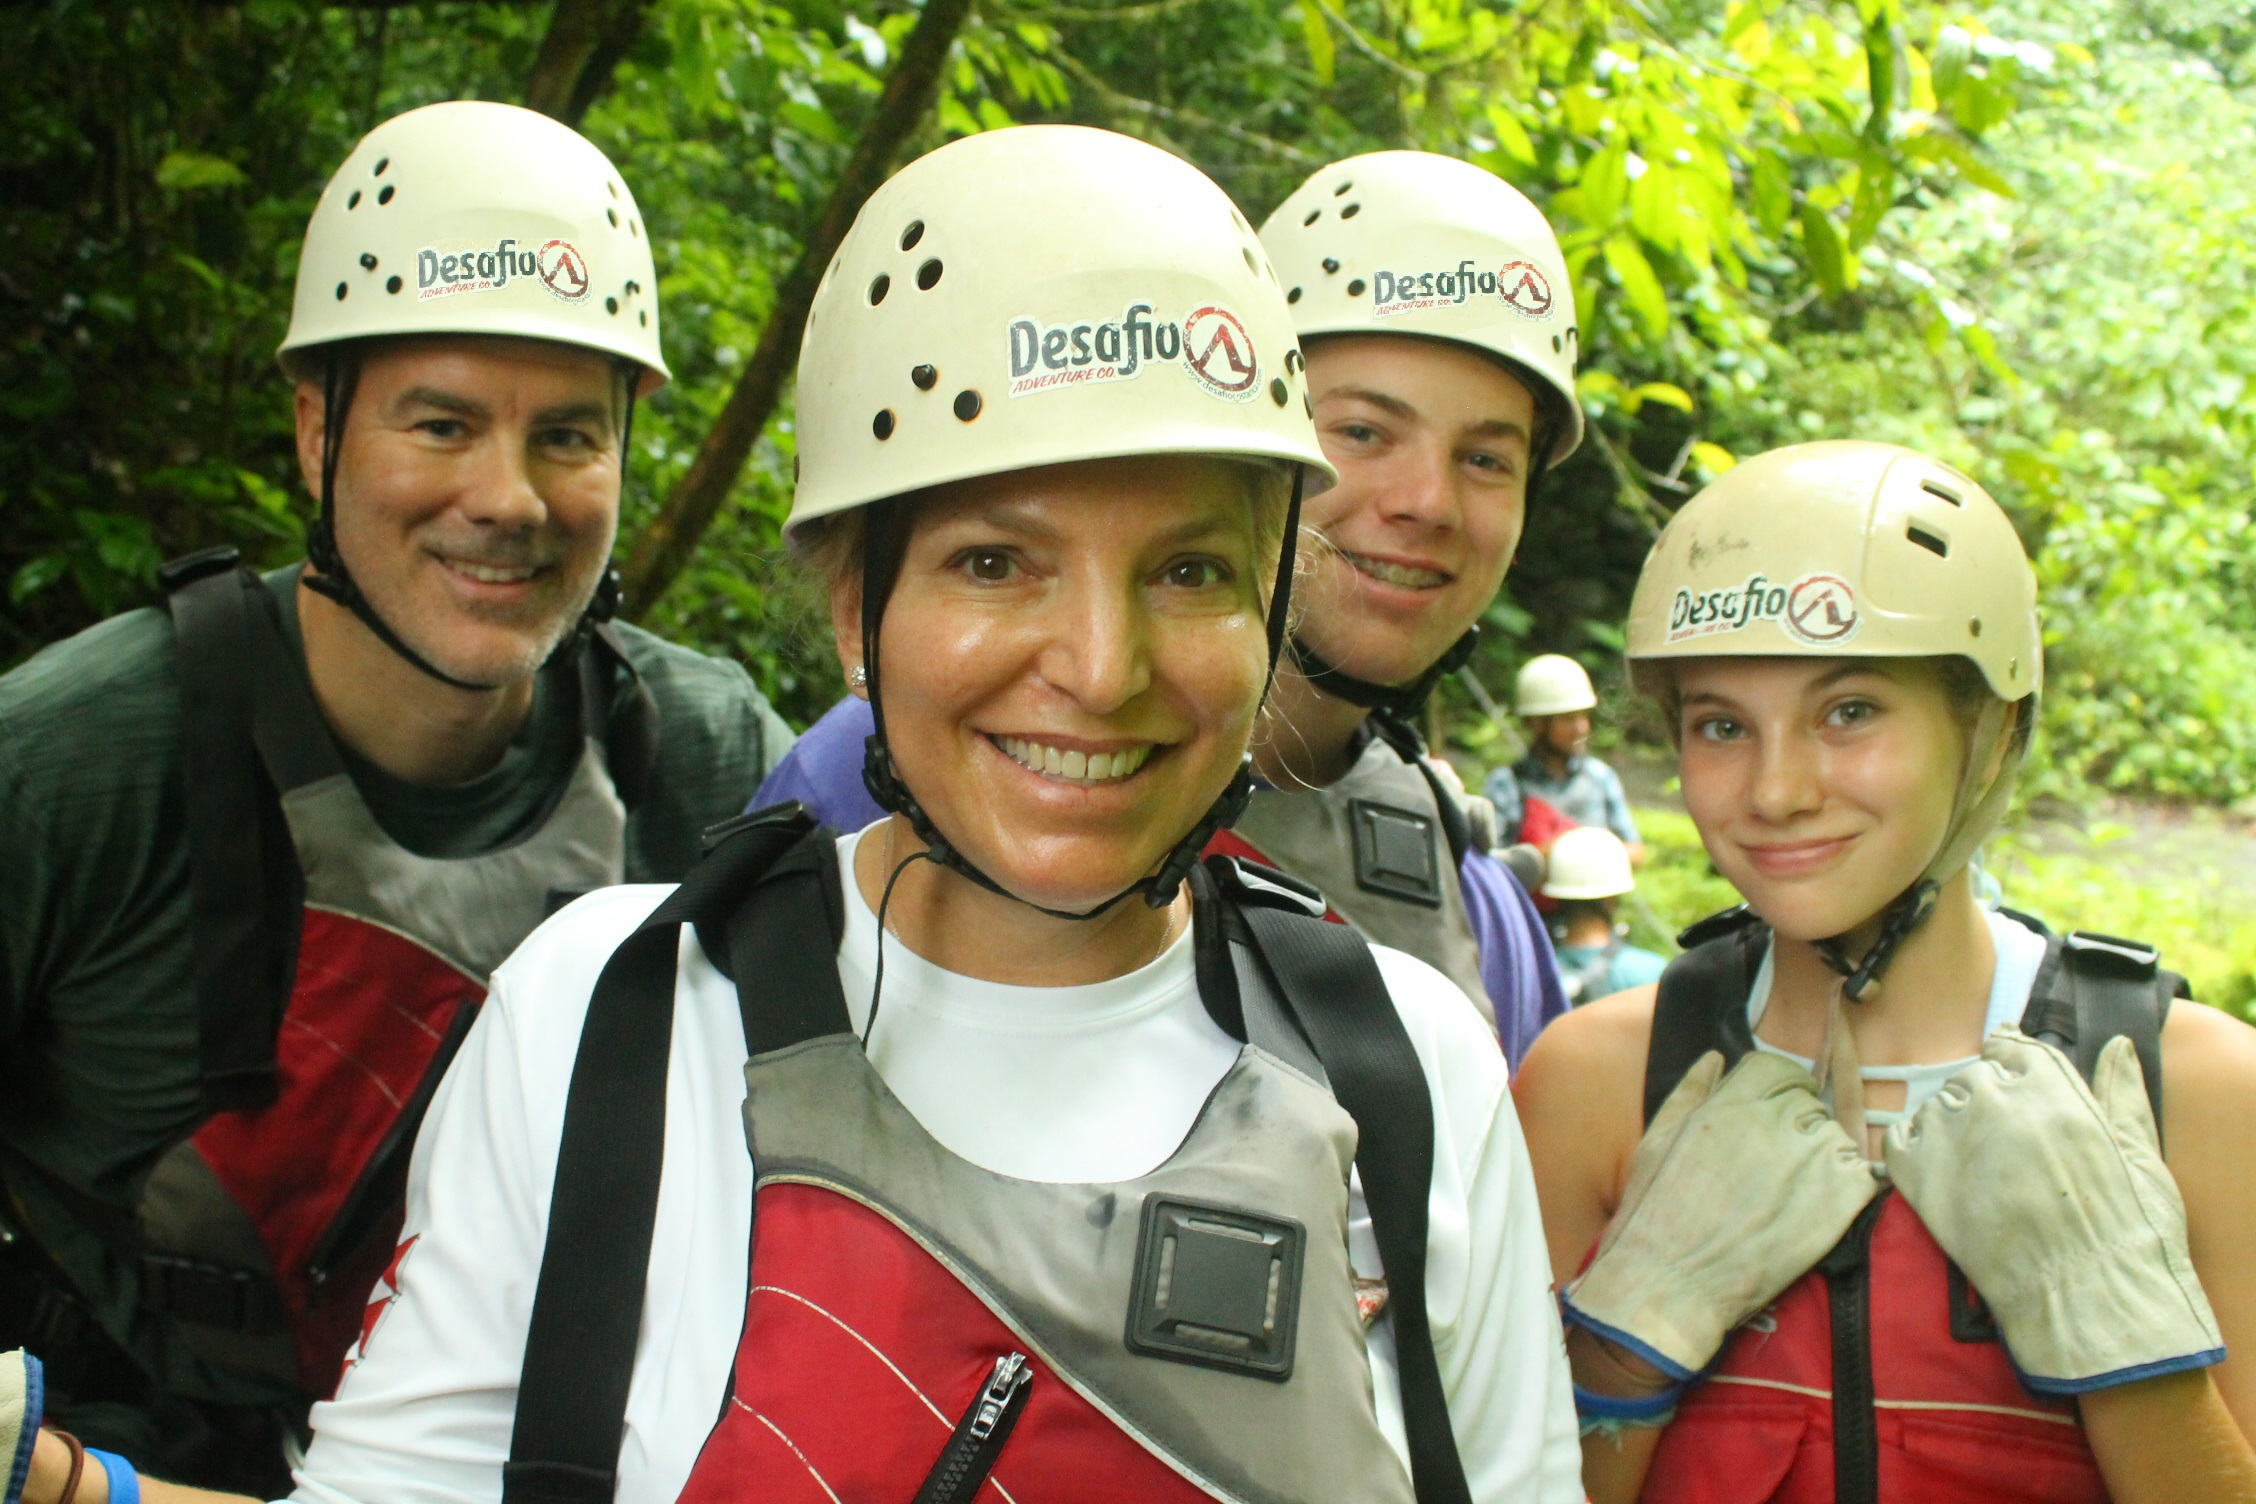 The Most Extreme Tour in Costa Rica!